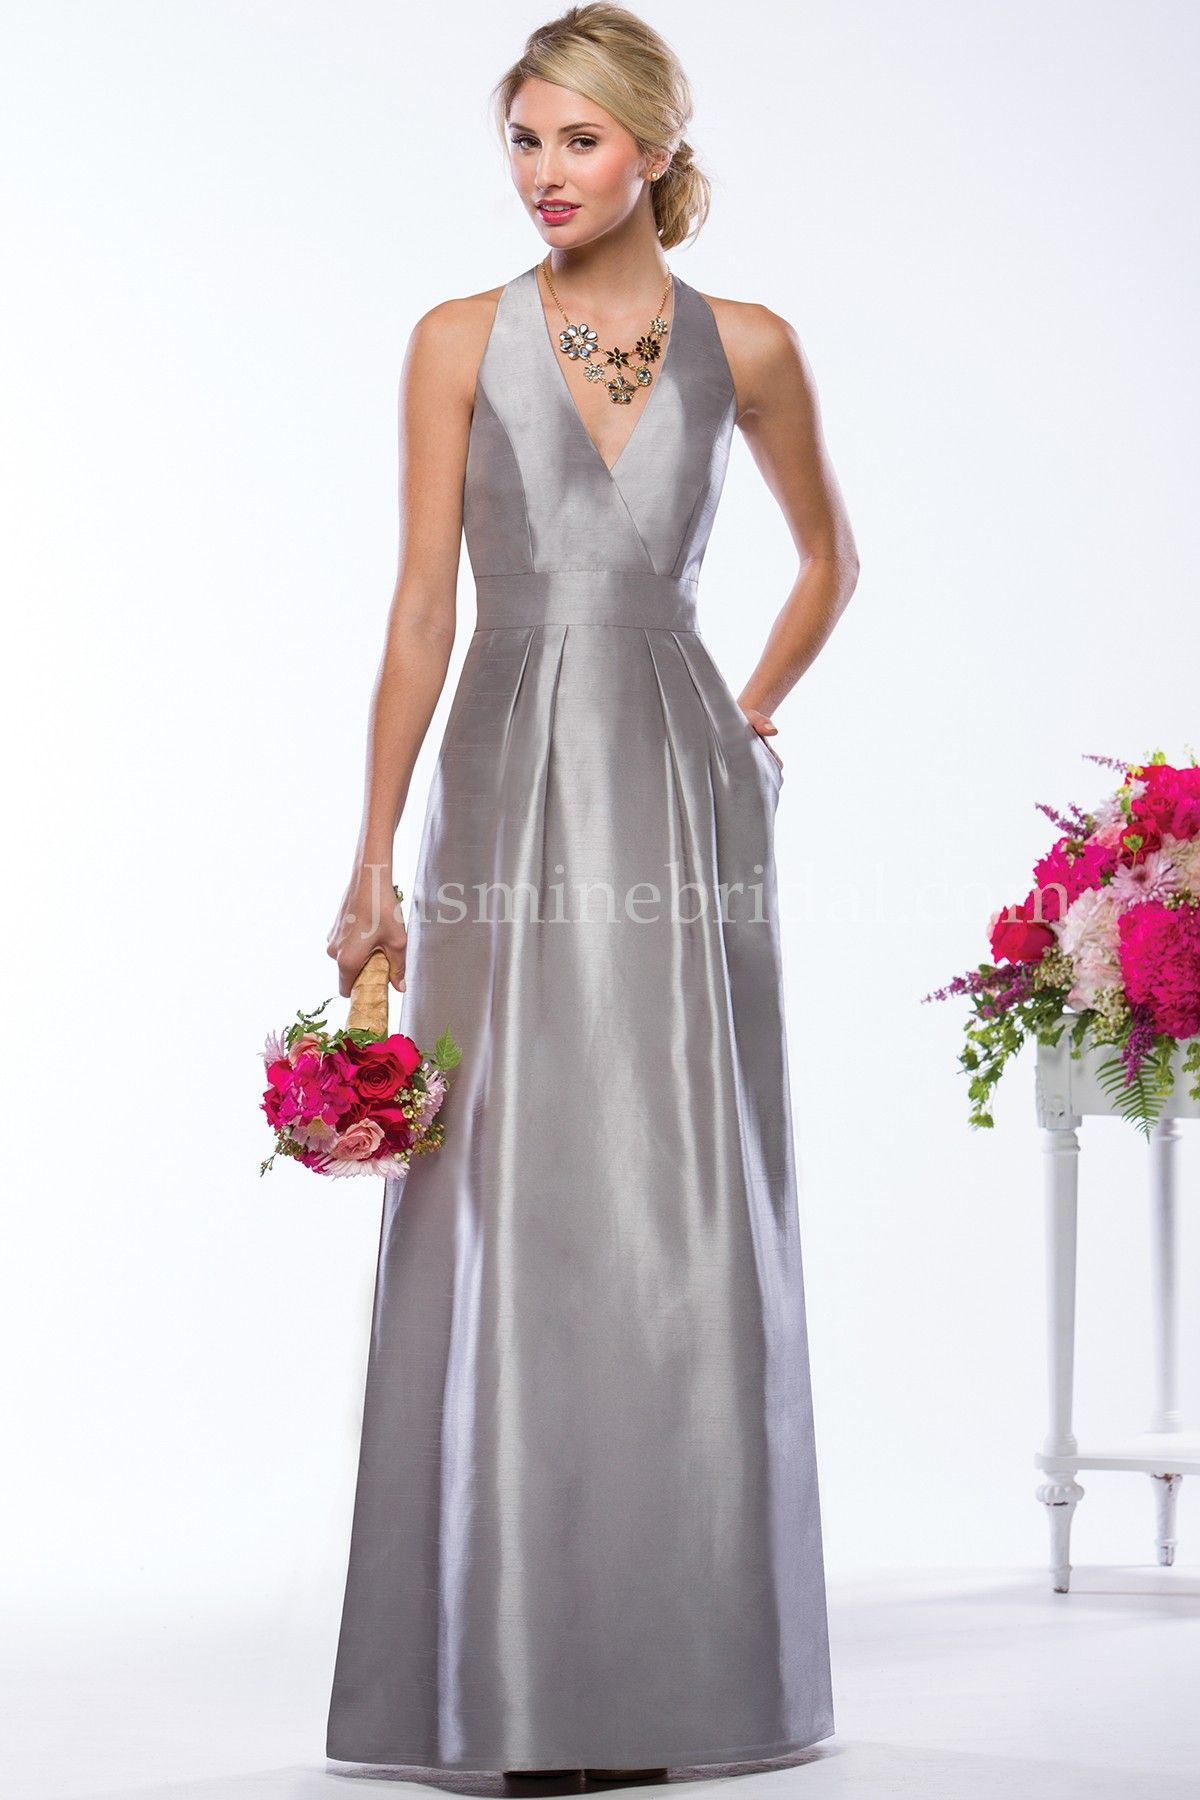 Jasmine bridal bridesmaid dress jasmine bridesmaids style p176062 in jasmine bridal bridesmaid dress jasmine bridesmaids style p176062 in platinum this bridesmaid dress is ombrellifo Images